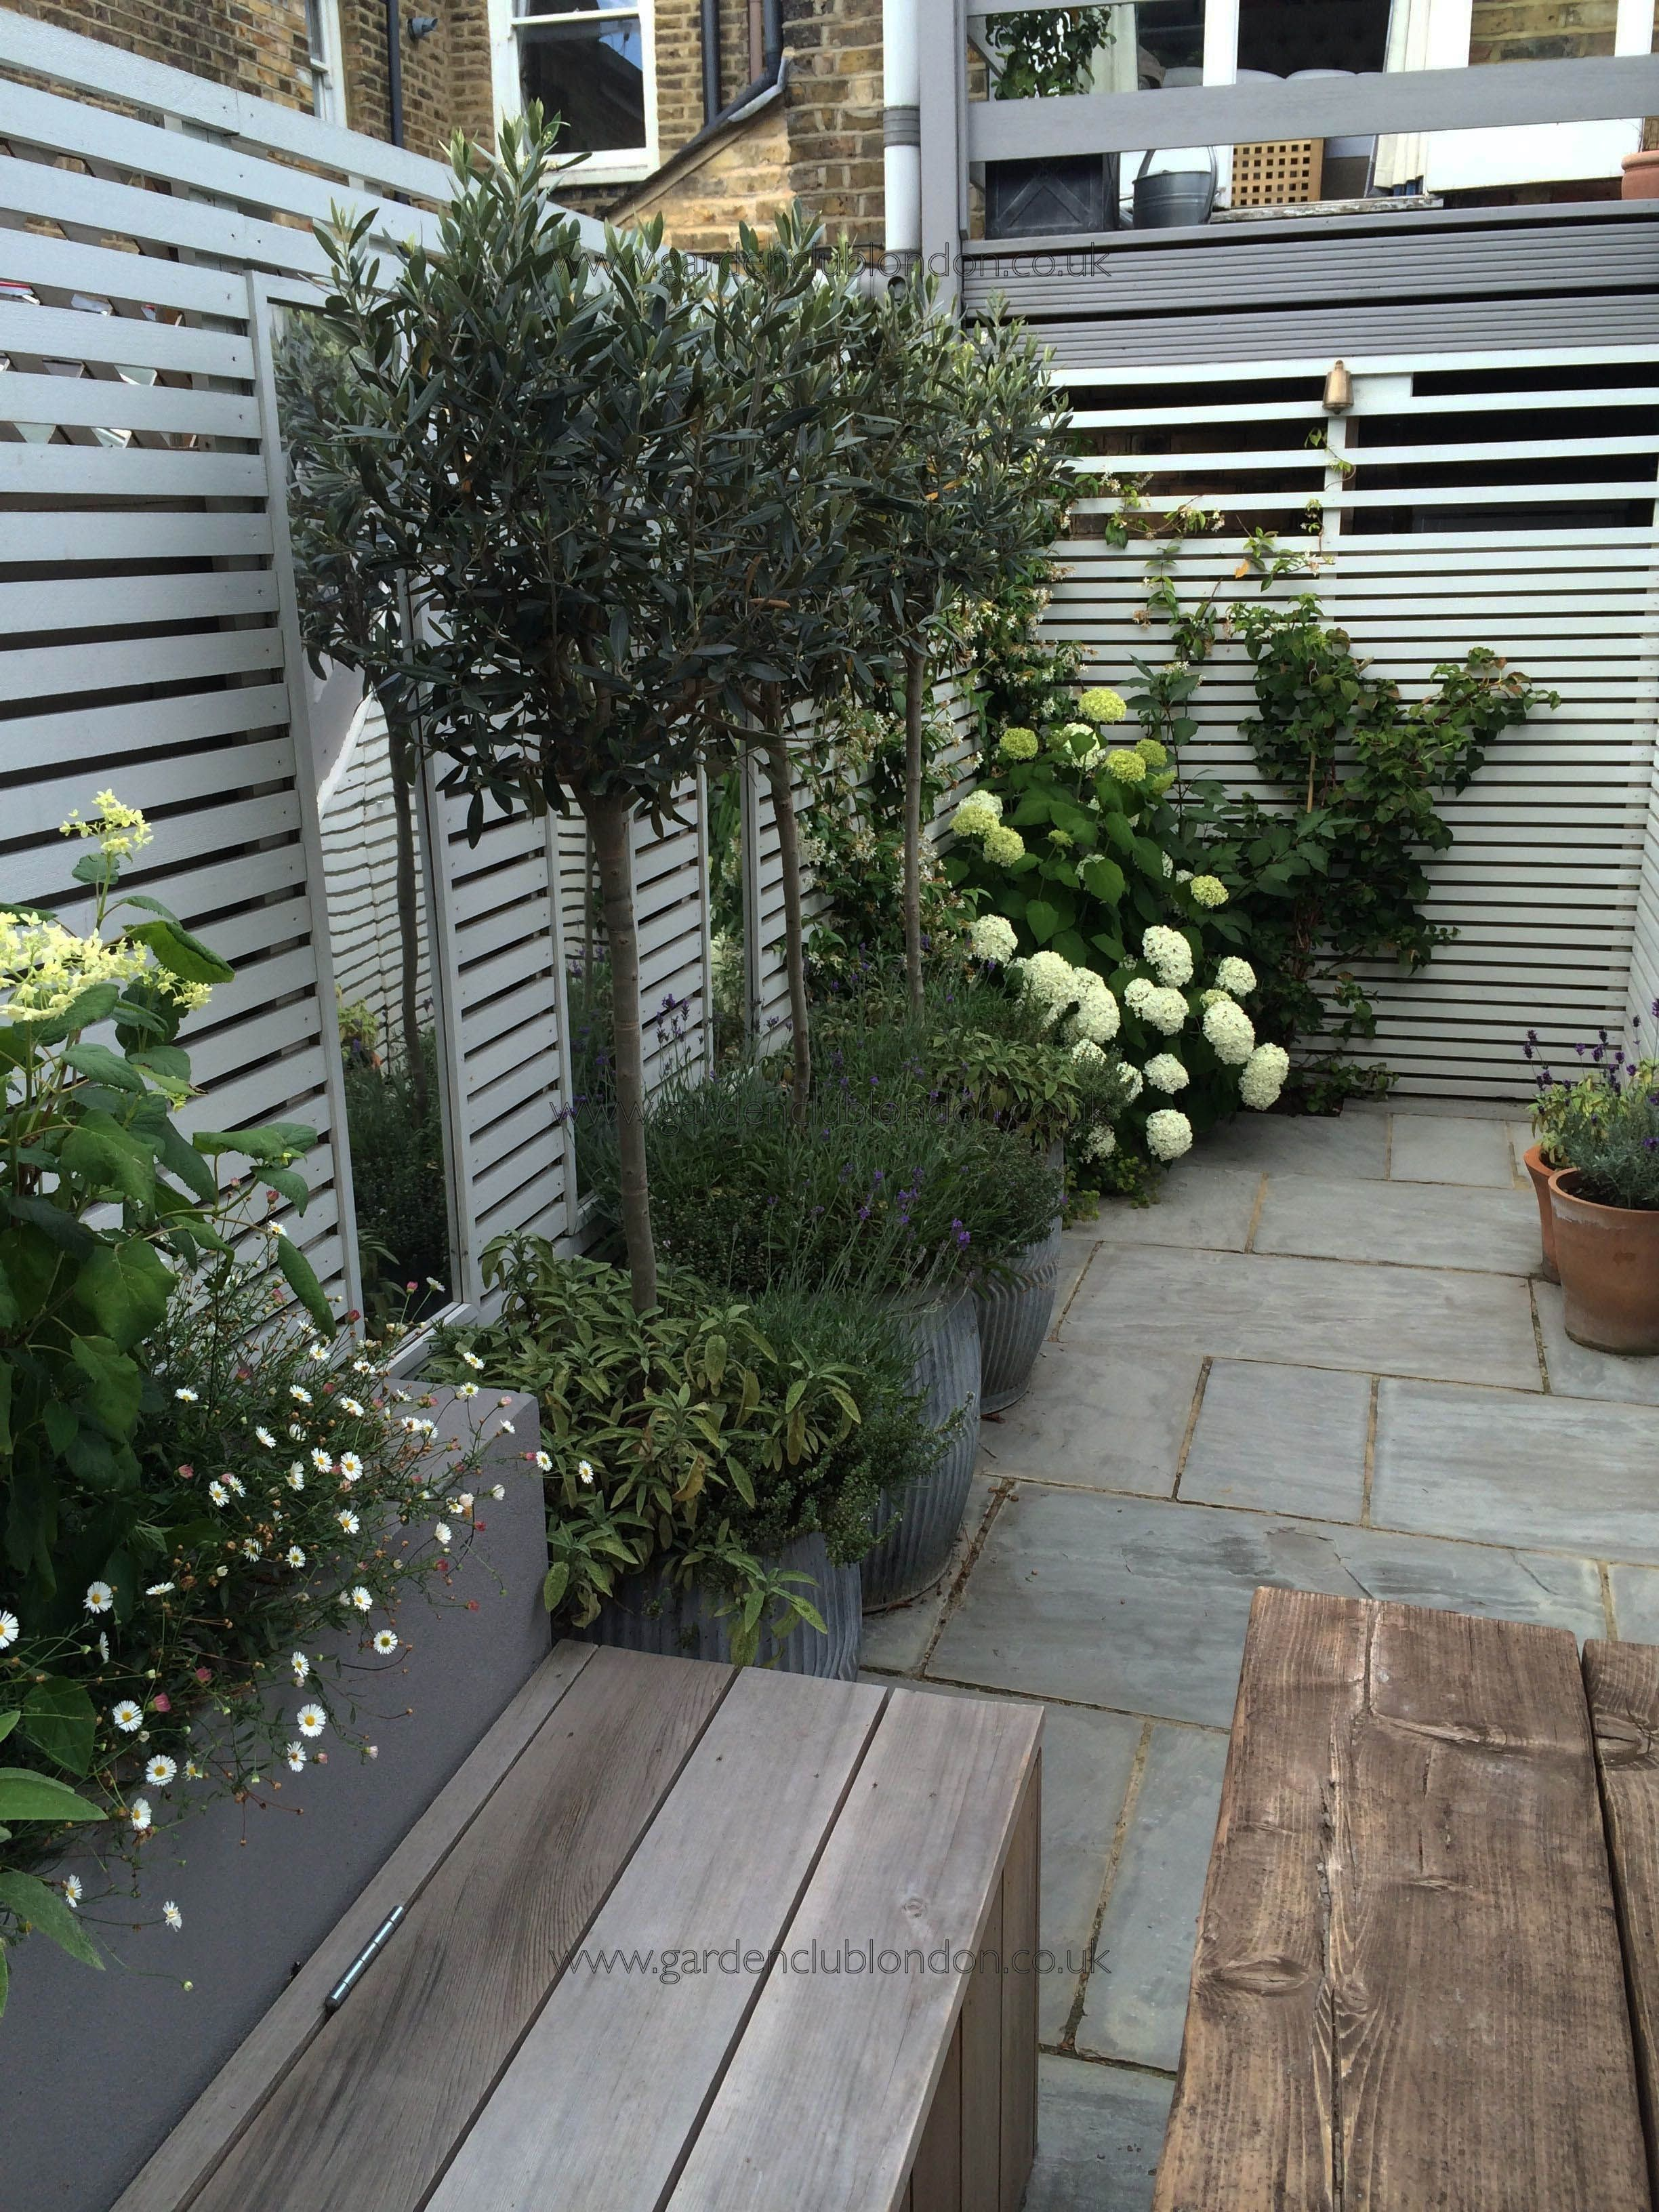 Small Patio Ideas With Images Urban Garden Design Small Urban